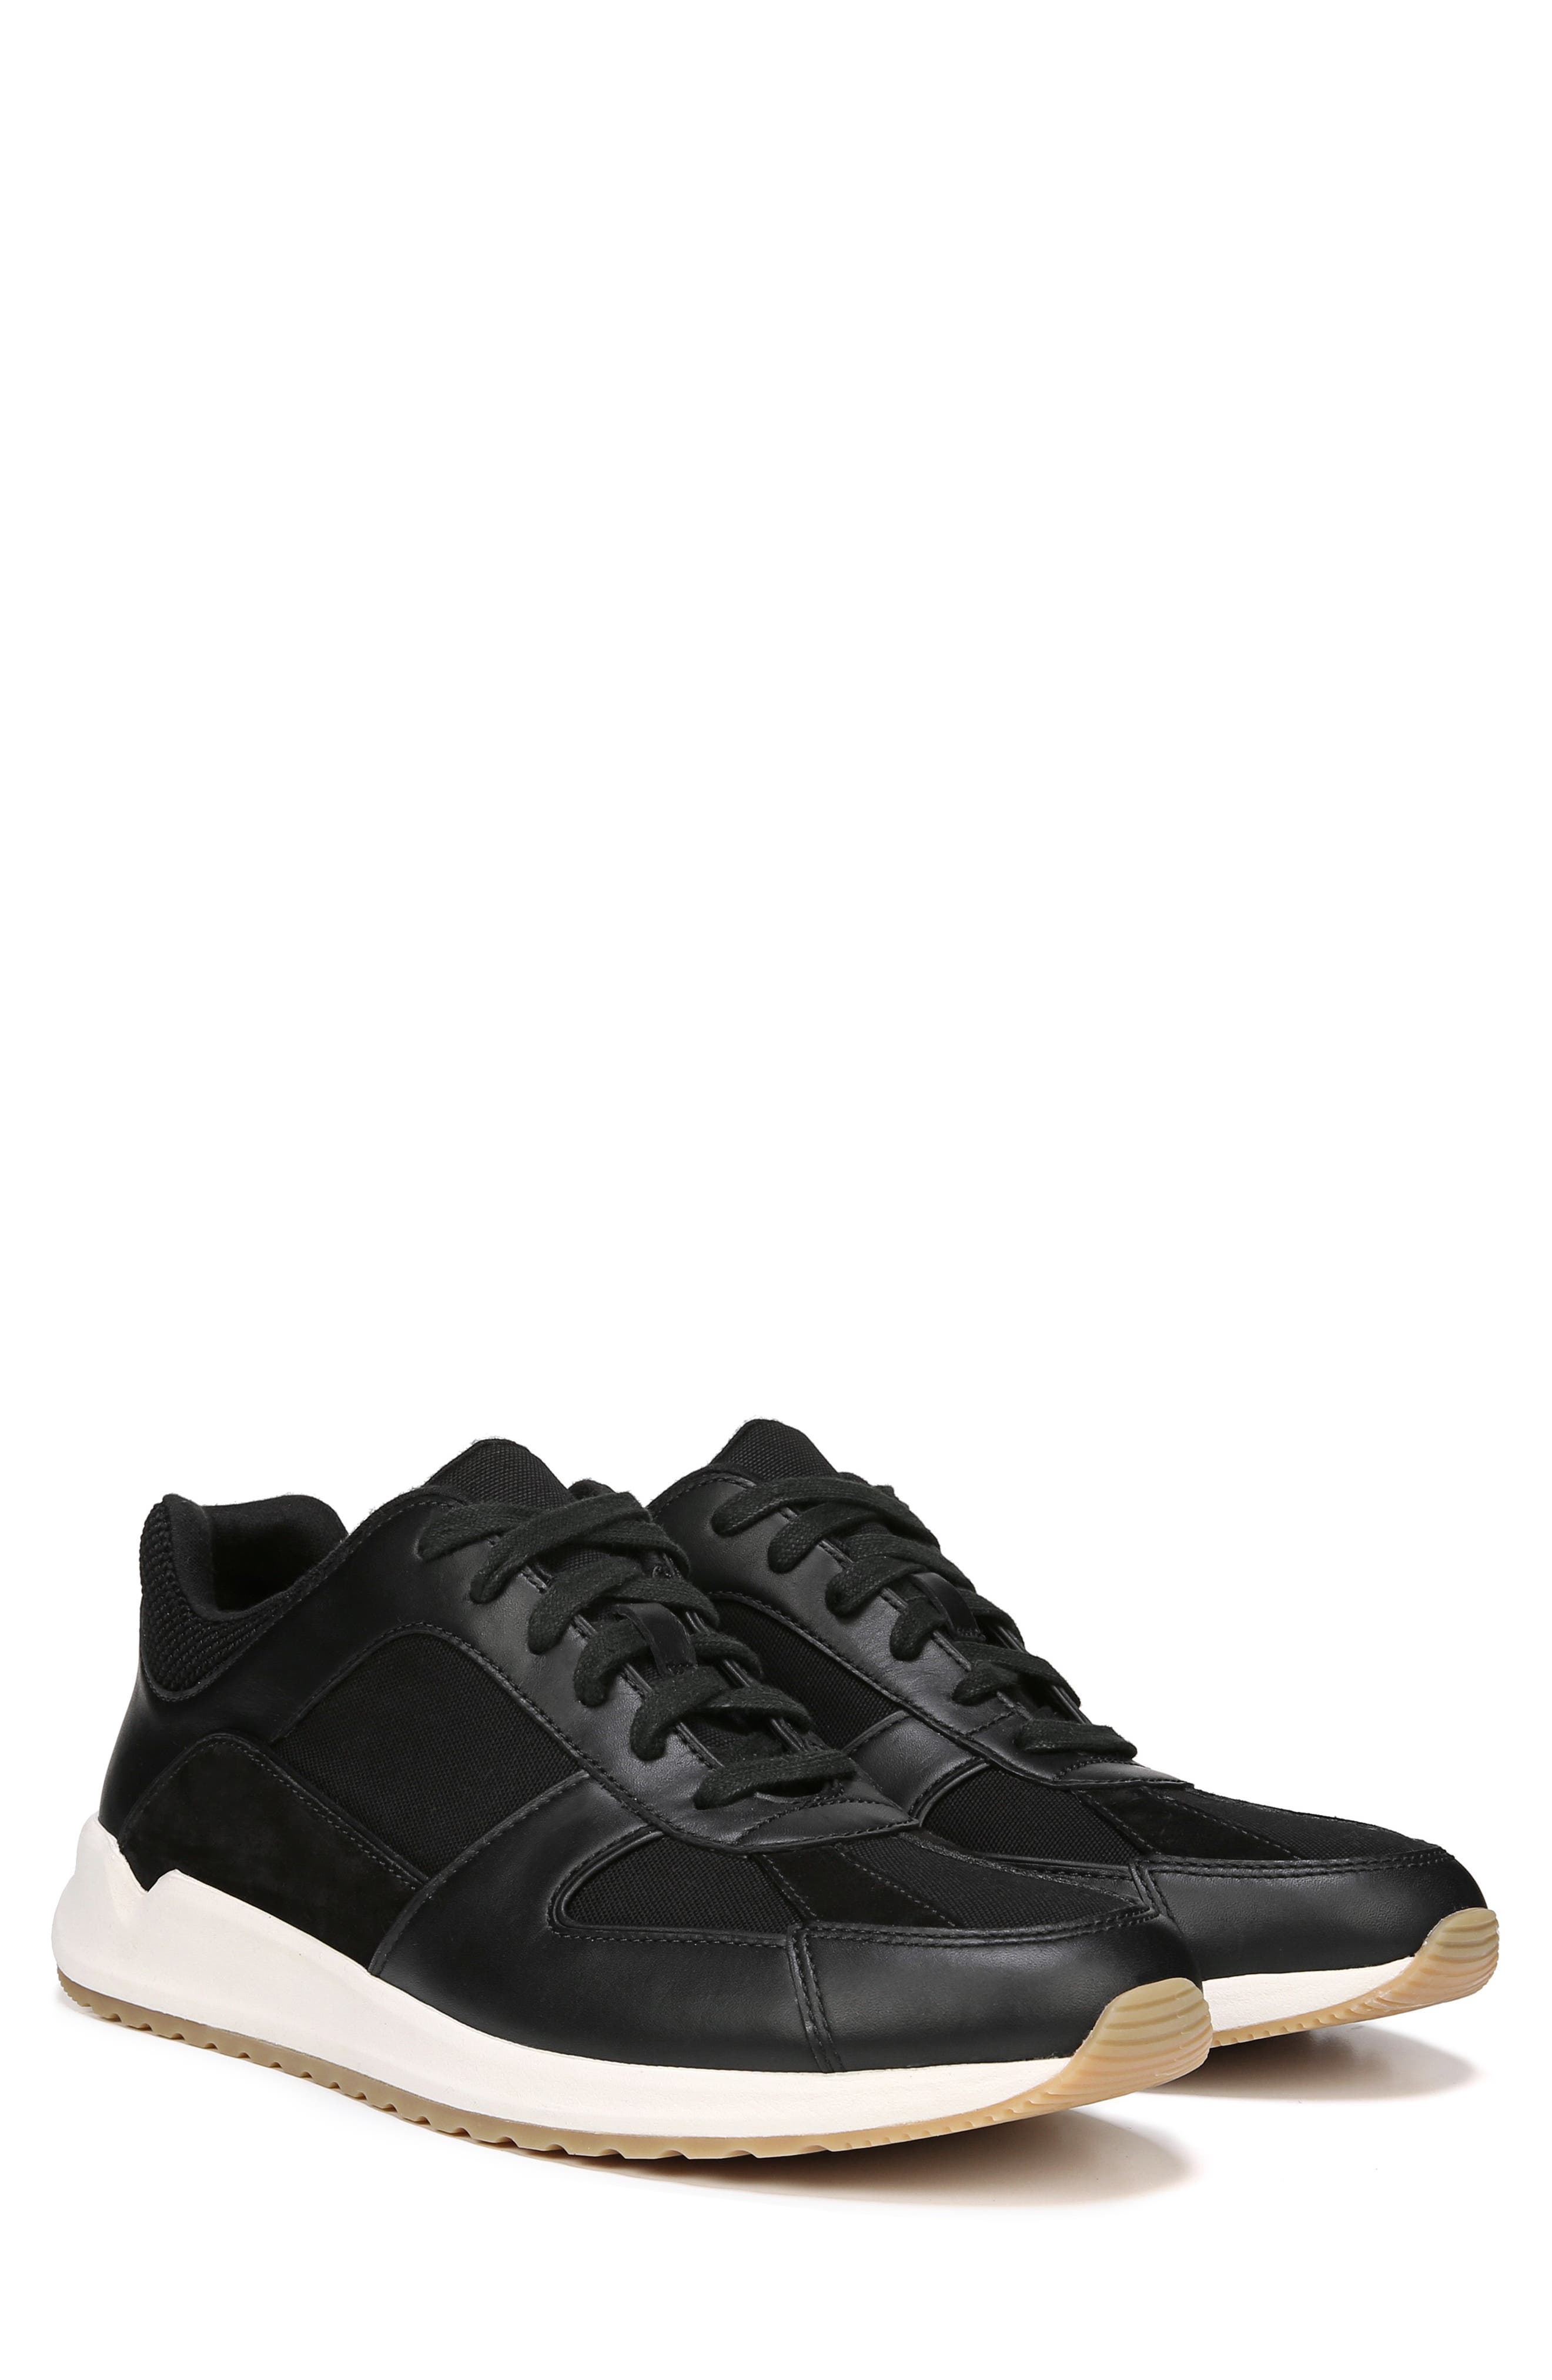 Griffin Sneaker,                             Alternate thumbnail 8, color,                             BLACK/ MADDOX